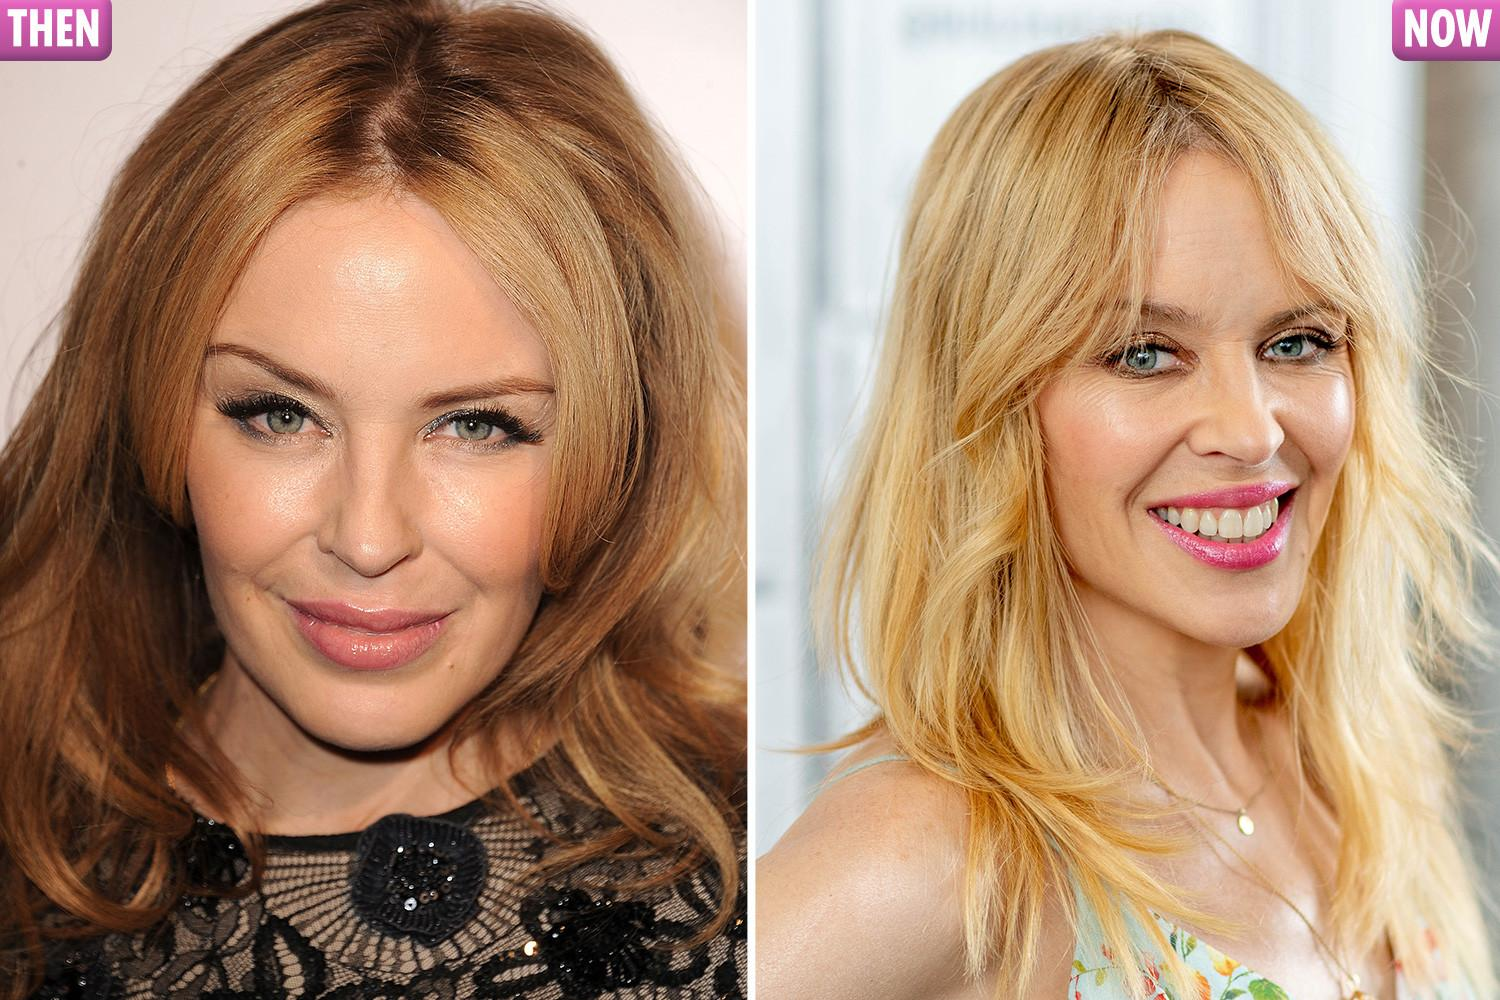 Kylie Minogue confesses: 'I'm preferring to be a lot more natural these days'